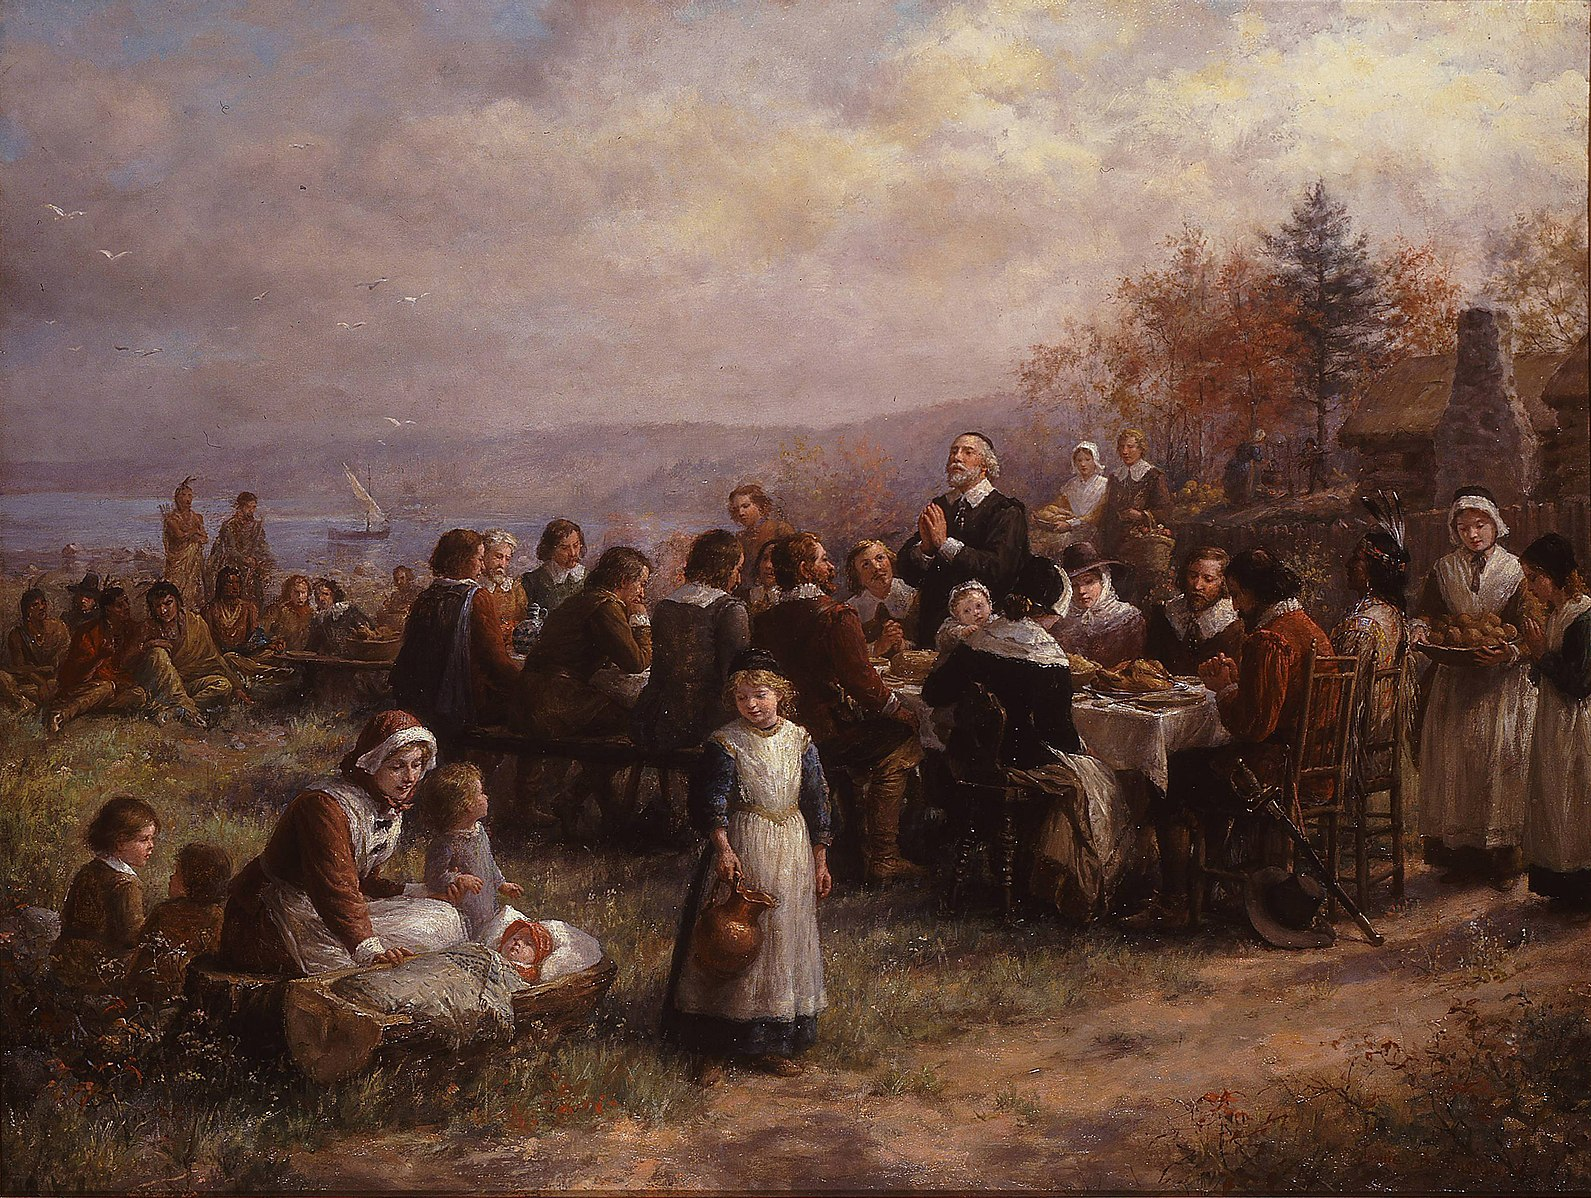 1591px-Thanksgiving_at_Plymouth,_1925,_Brownscombe.jpg